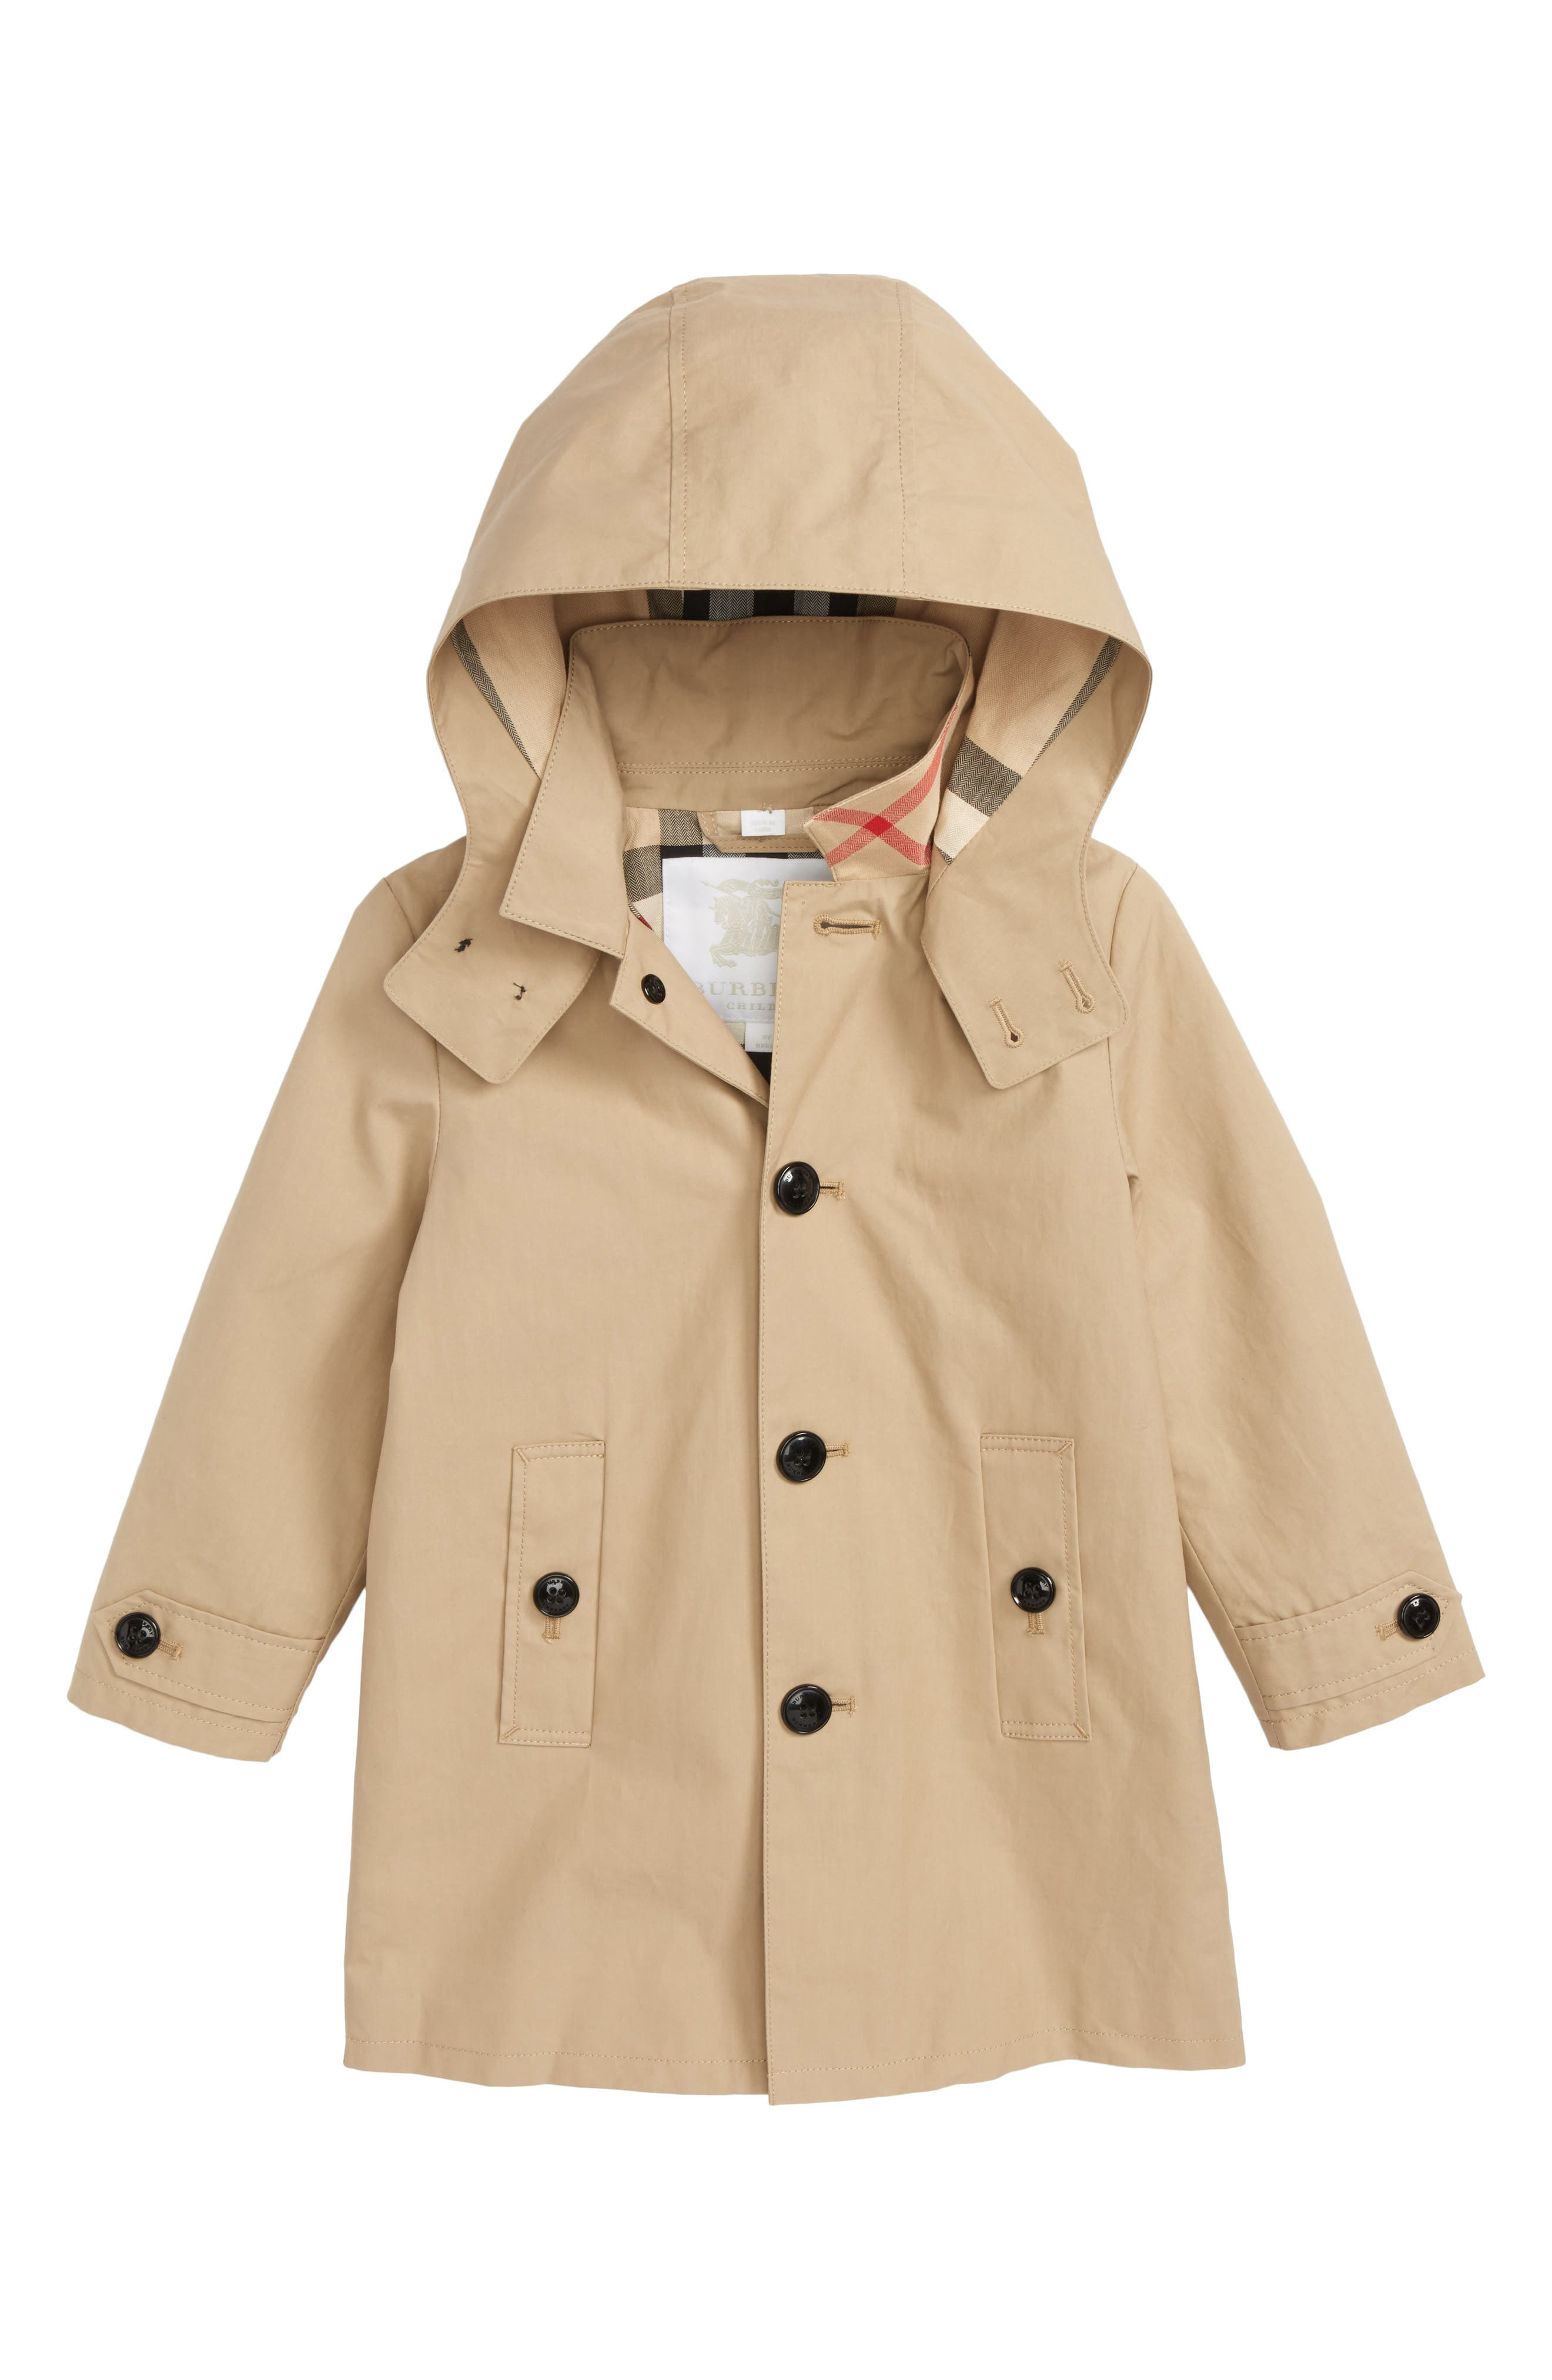 burberry kids jackets on sale, Burberry Clothing & Bag ...